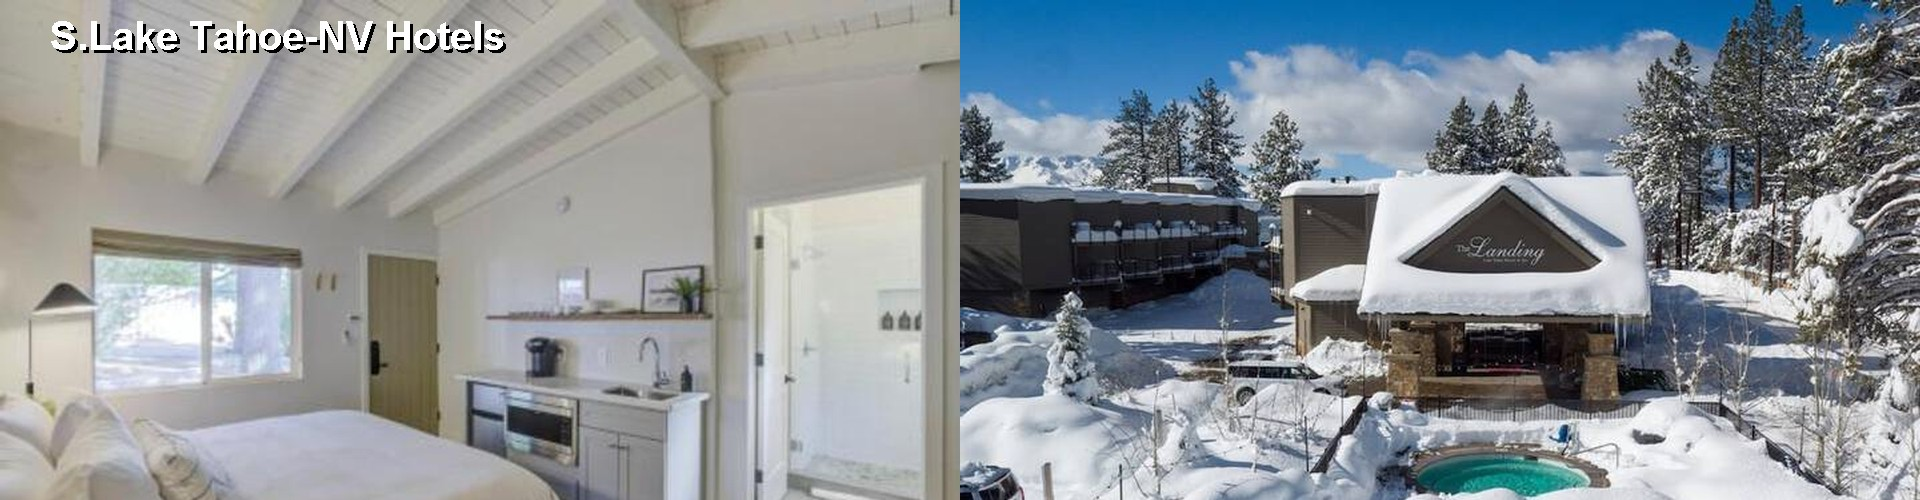 5 Best Hotels near S.Lake Tahoe-NV